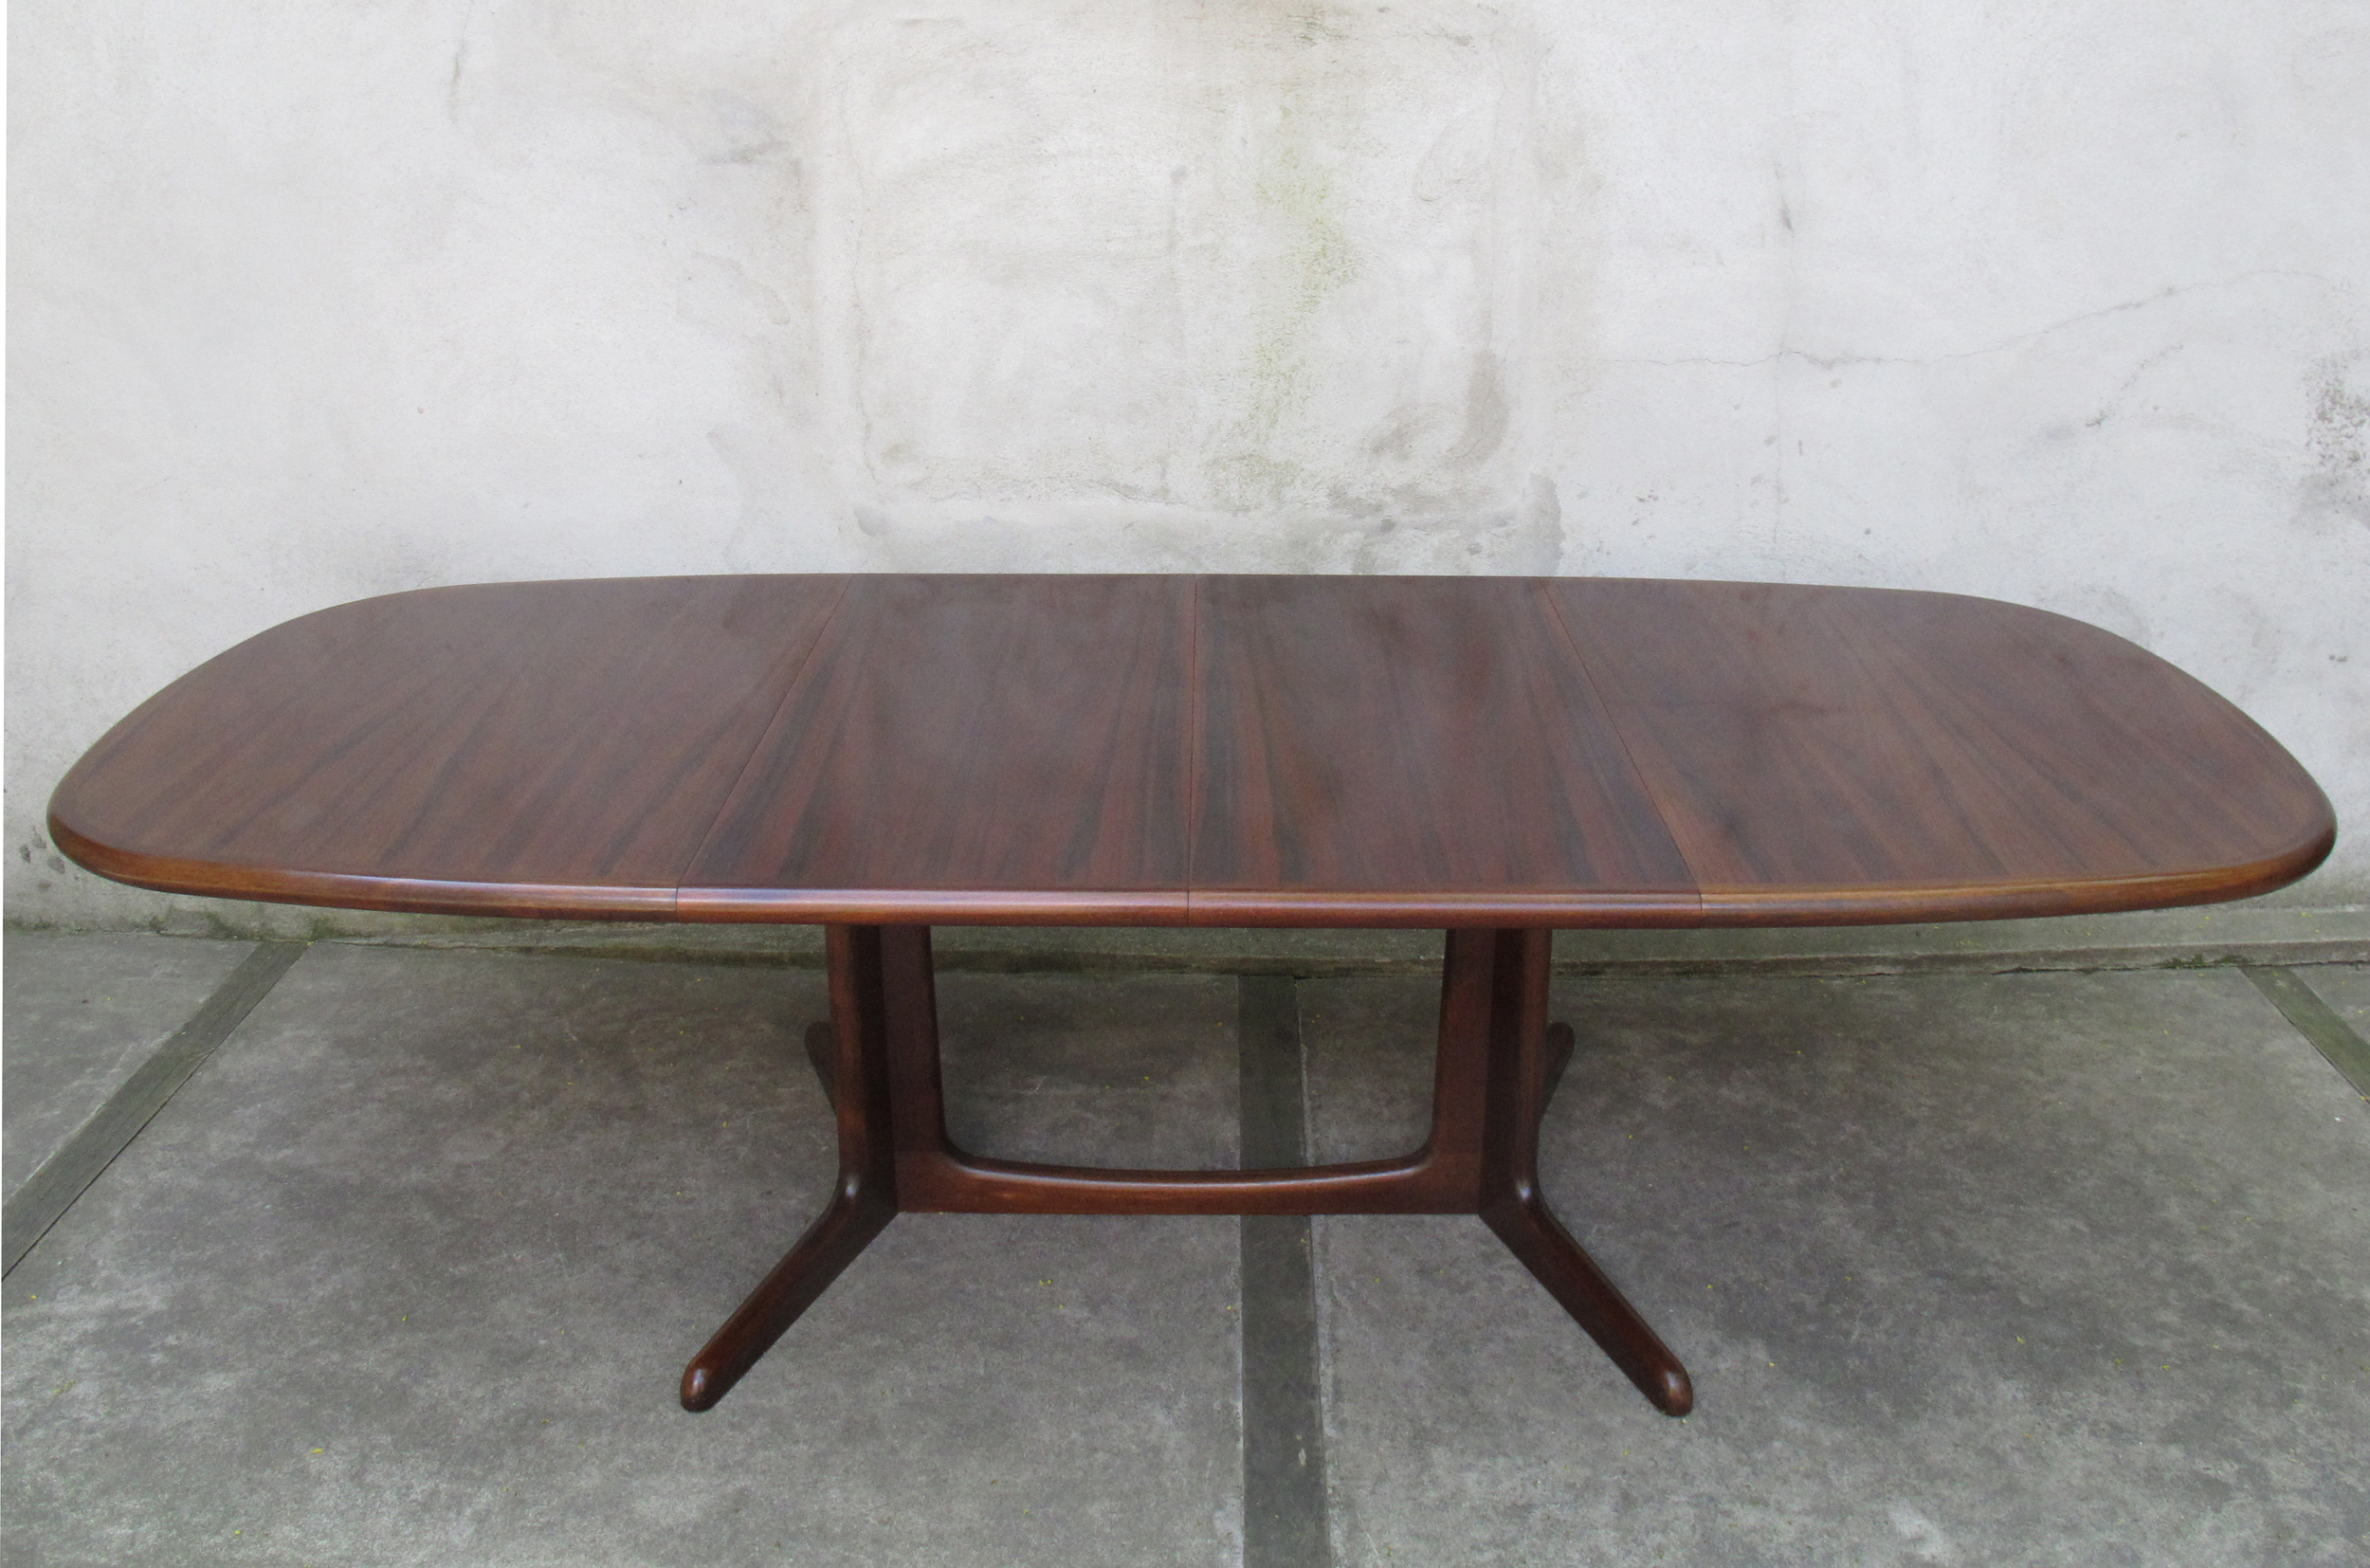 DANISH ROSEWOOD DINING TABLE BY NEILS O. MOLLER FOR GUDME